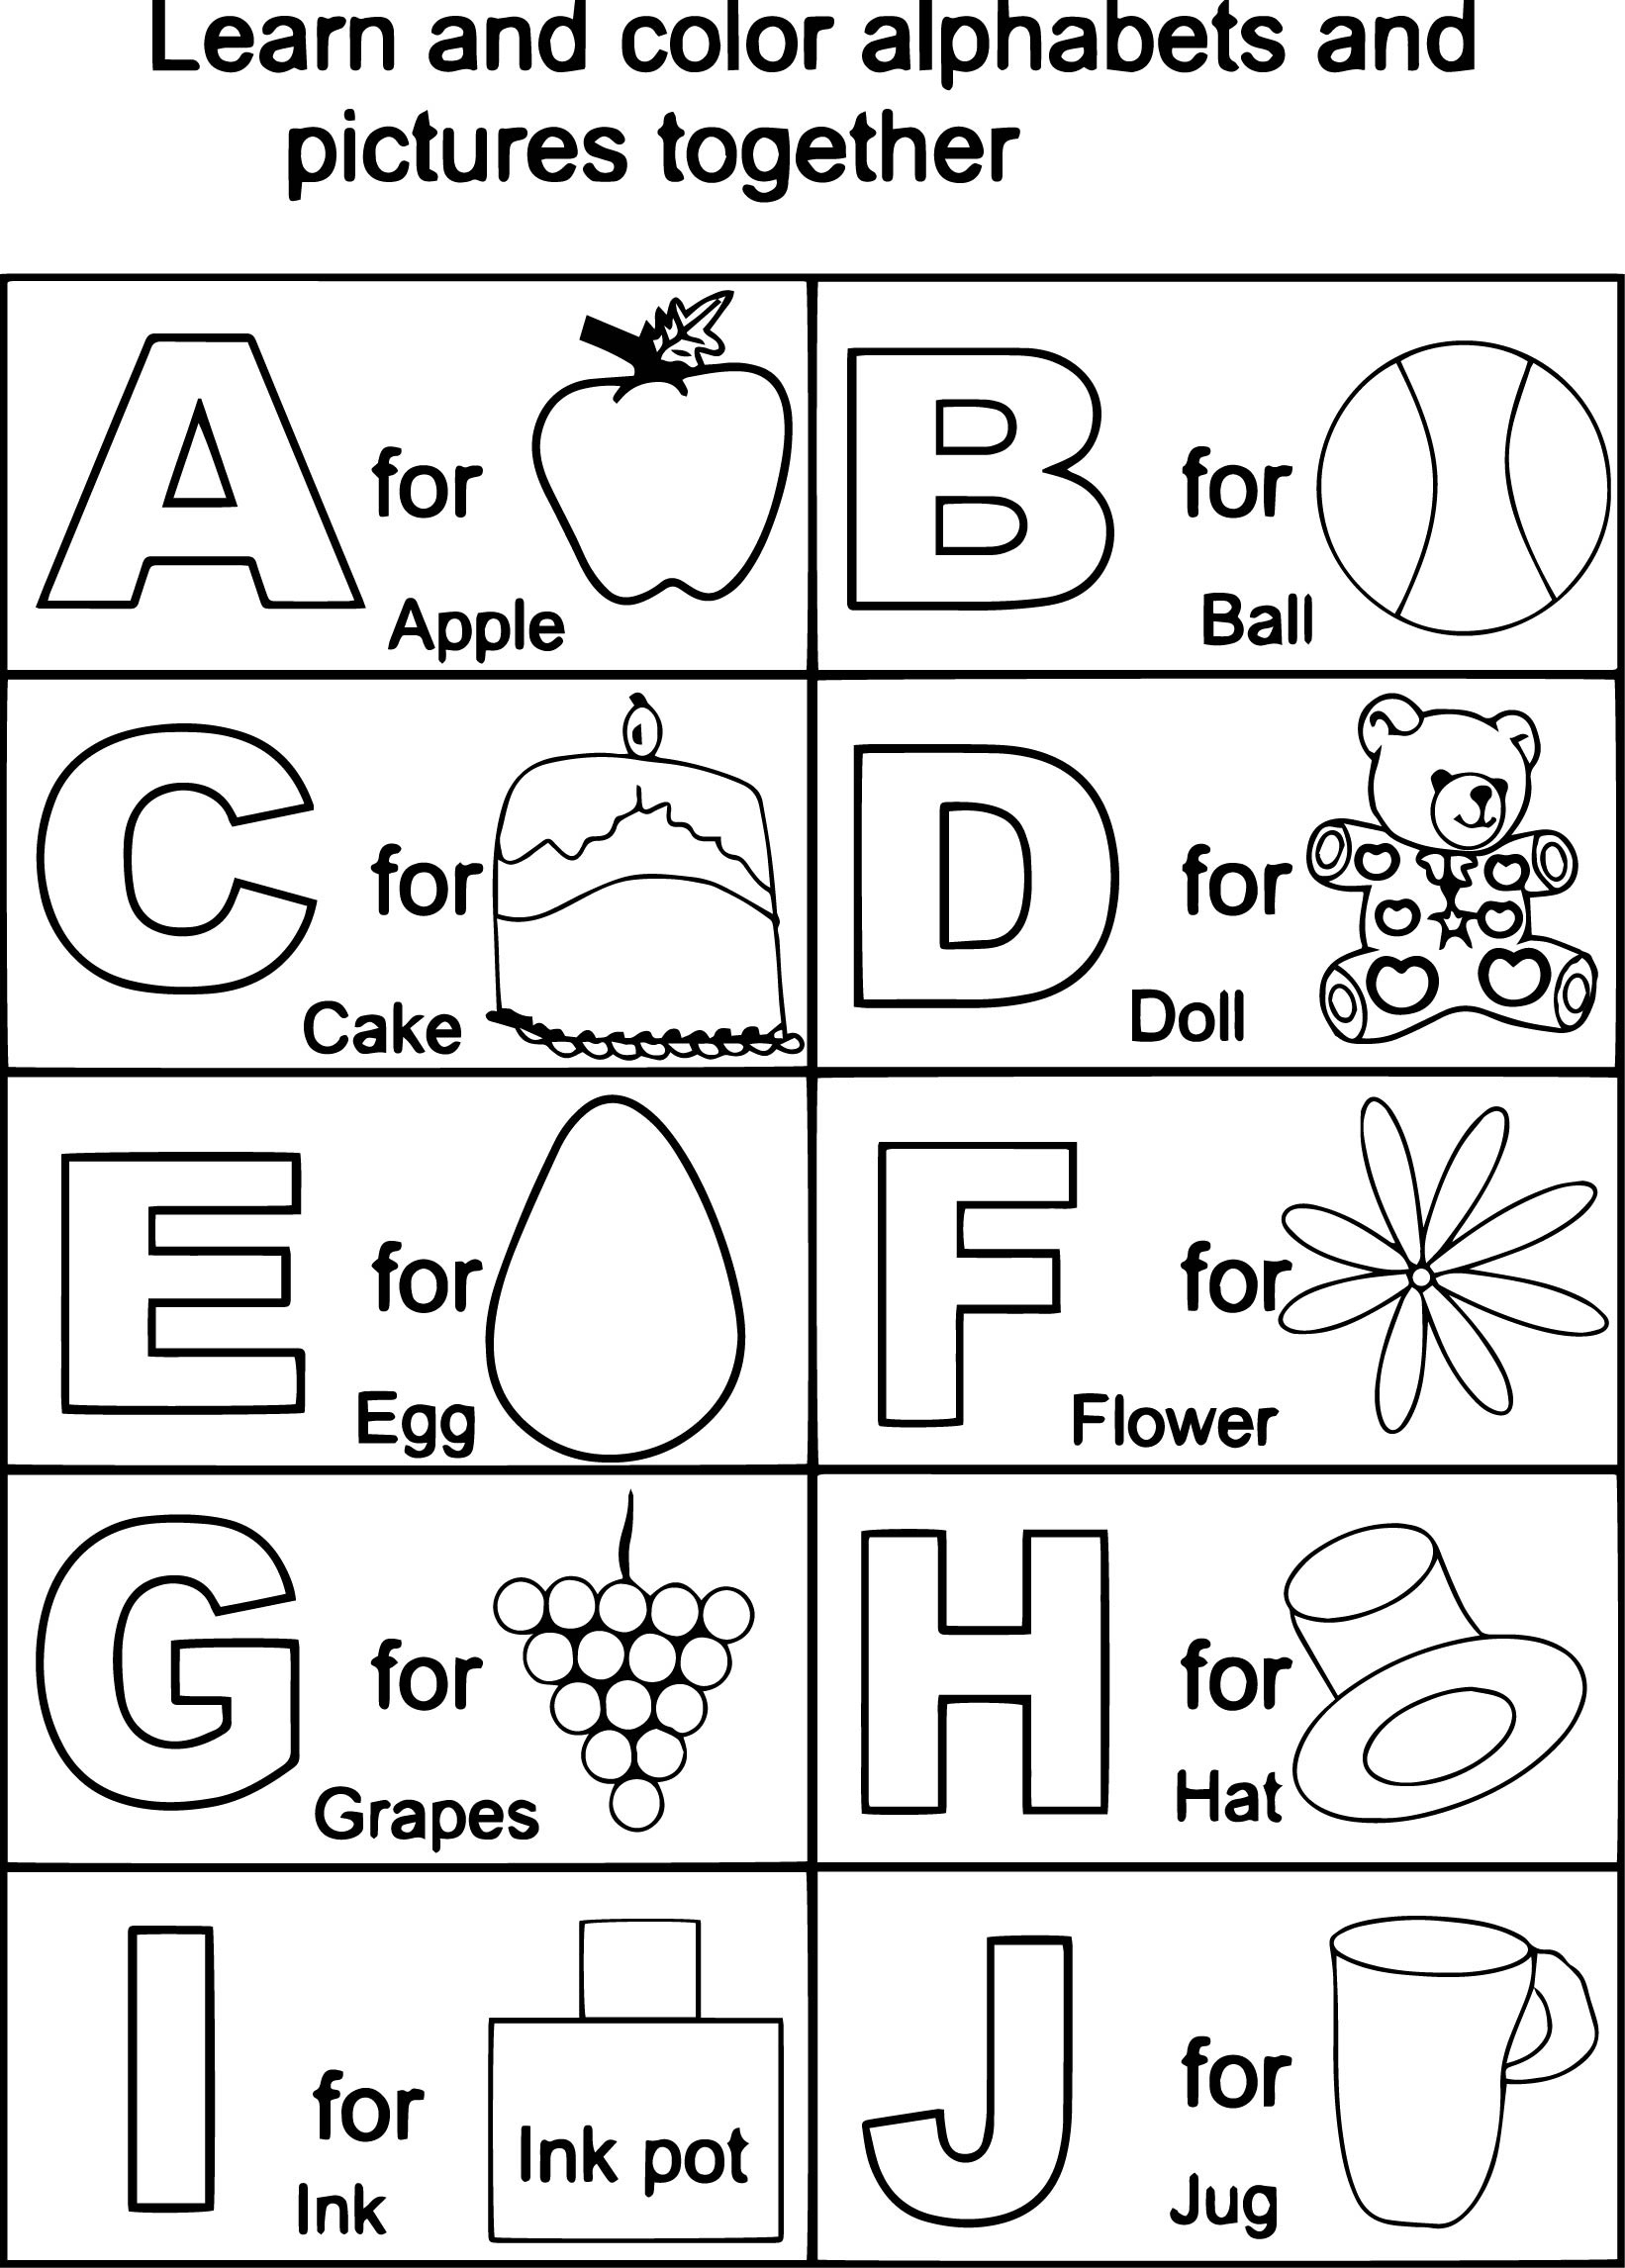 Coloring Pages : Coloring Pages Tremendous Free Printable Alphabet - Free Printable Preschool Alphabet Coloring Pages